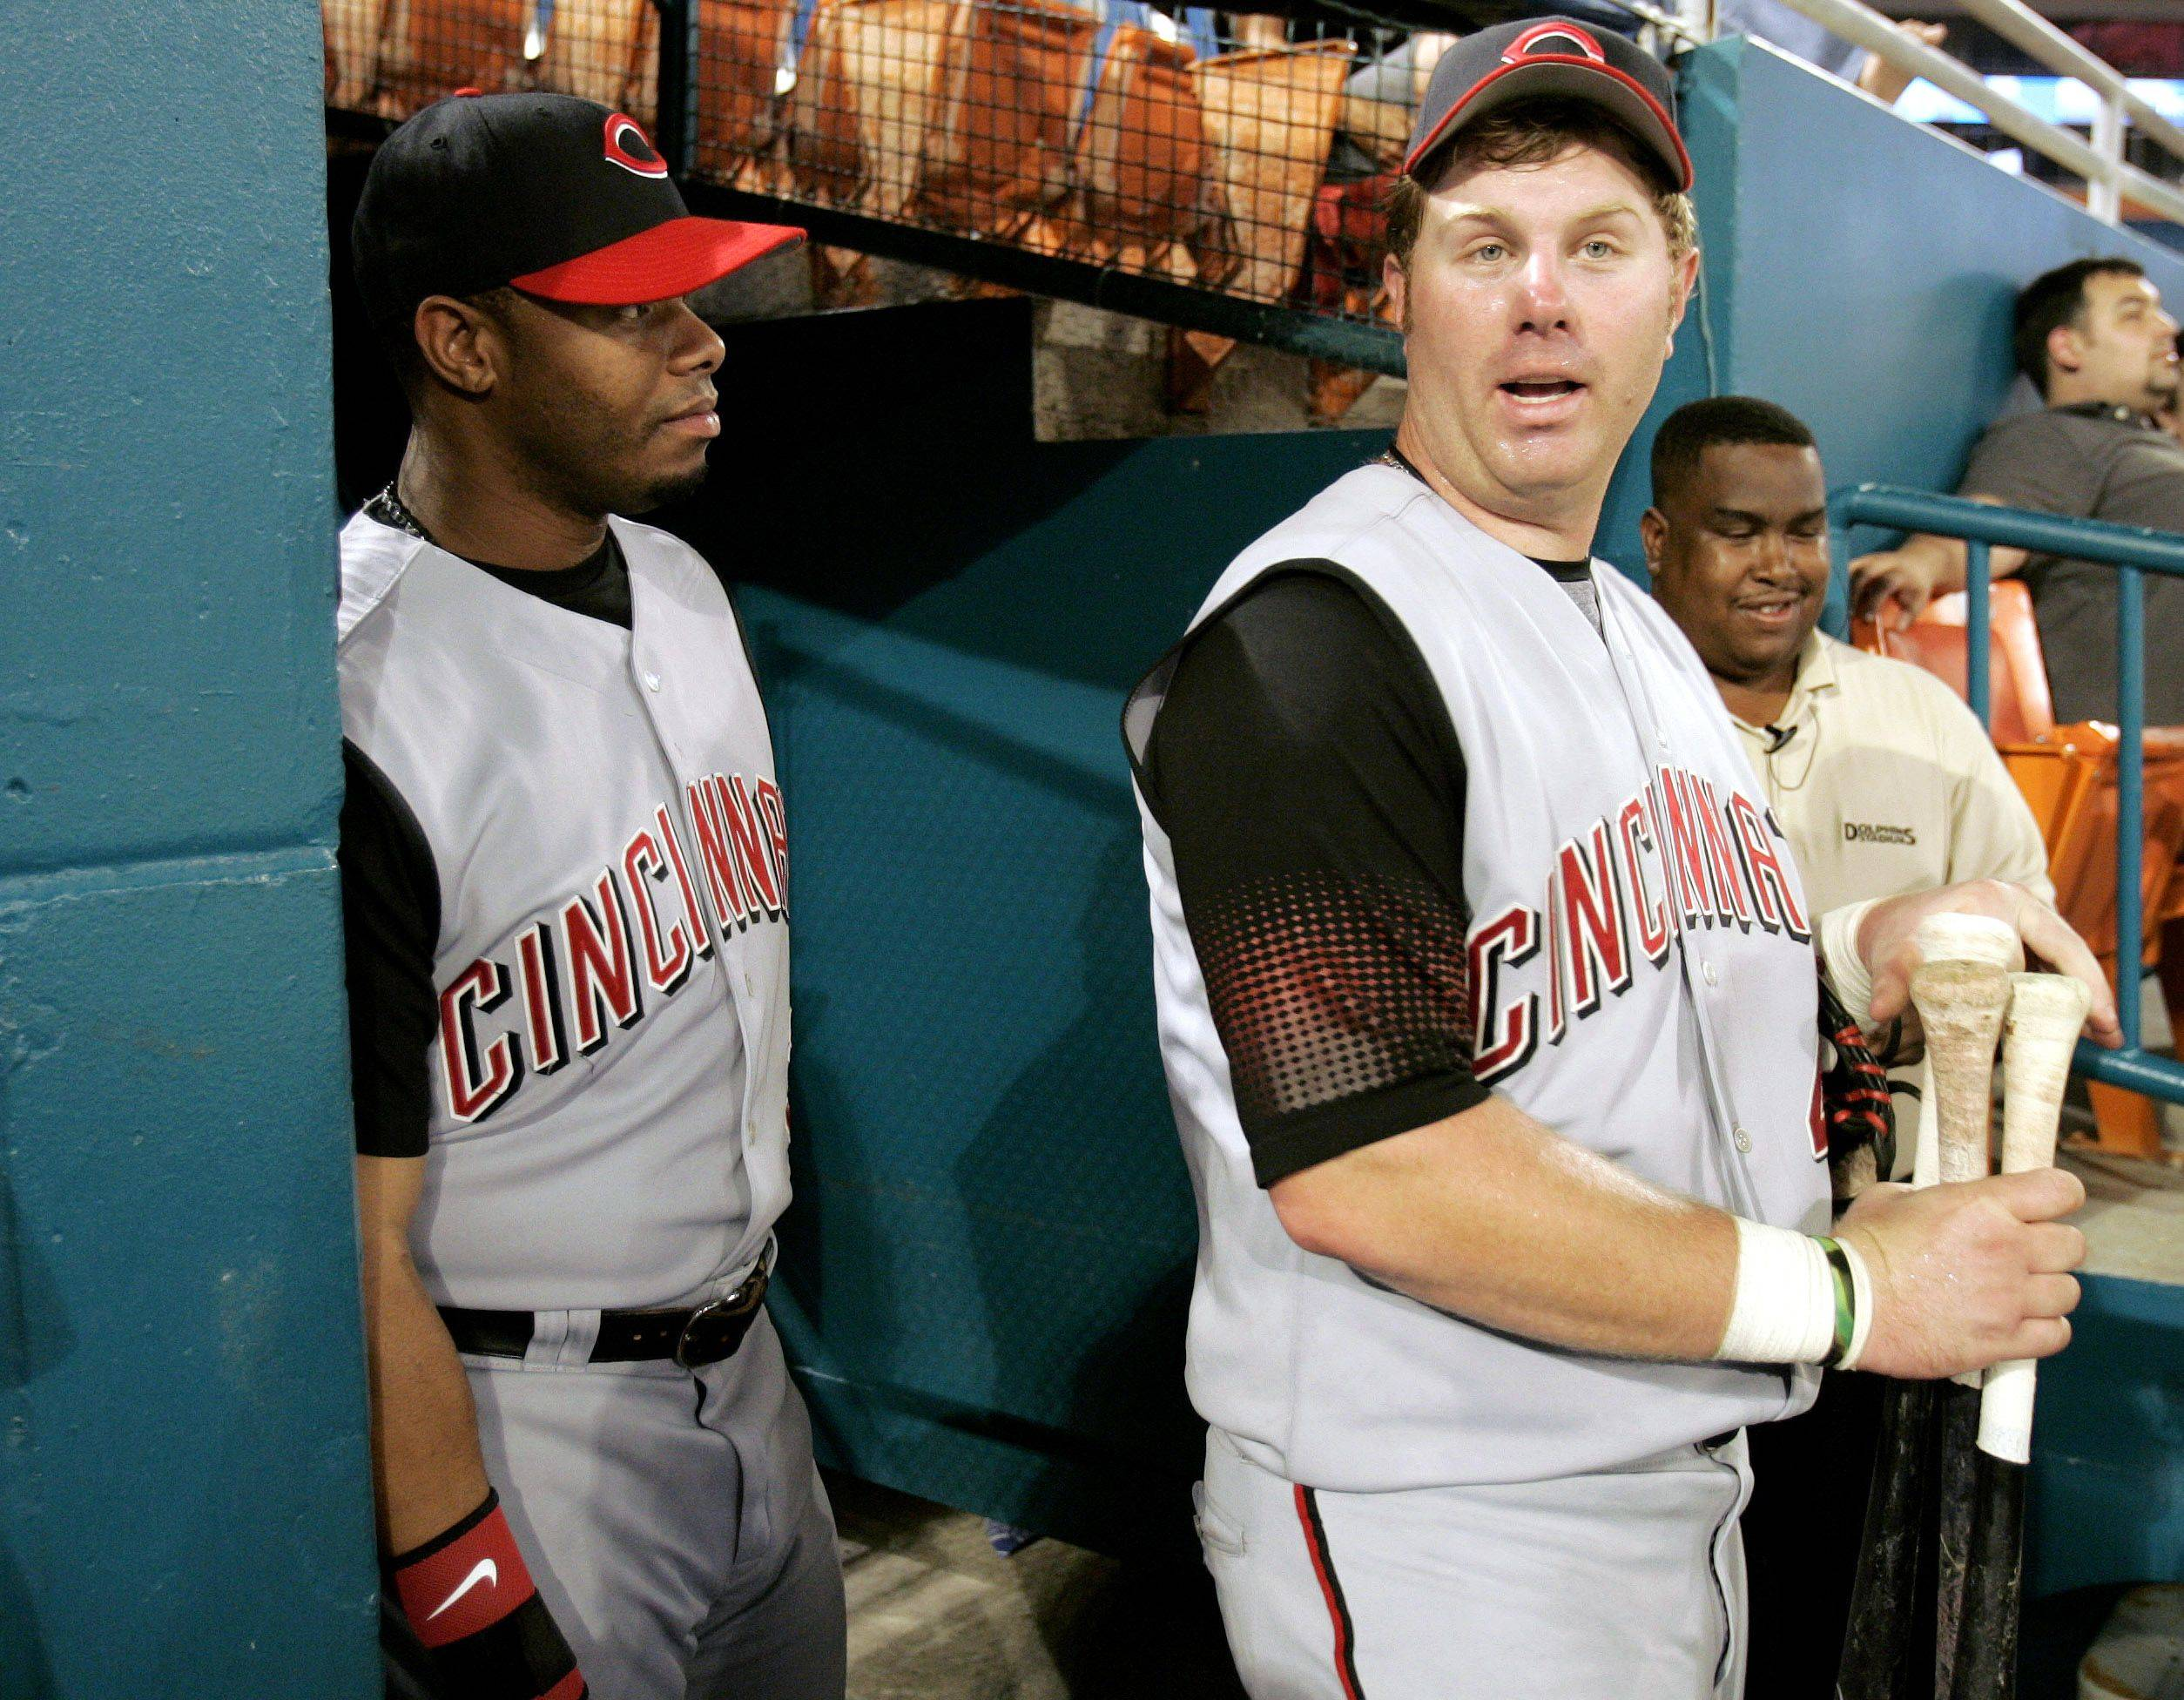 Cincinnati Reds' Ken Griffey Jr., left, talks with outfielder Adam Dunn during a baseball game against the Florida Marlins at Dolphin Stadium in Miami Tuesday, Sept. 26, 2006.